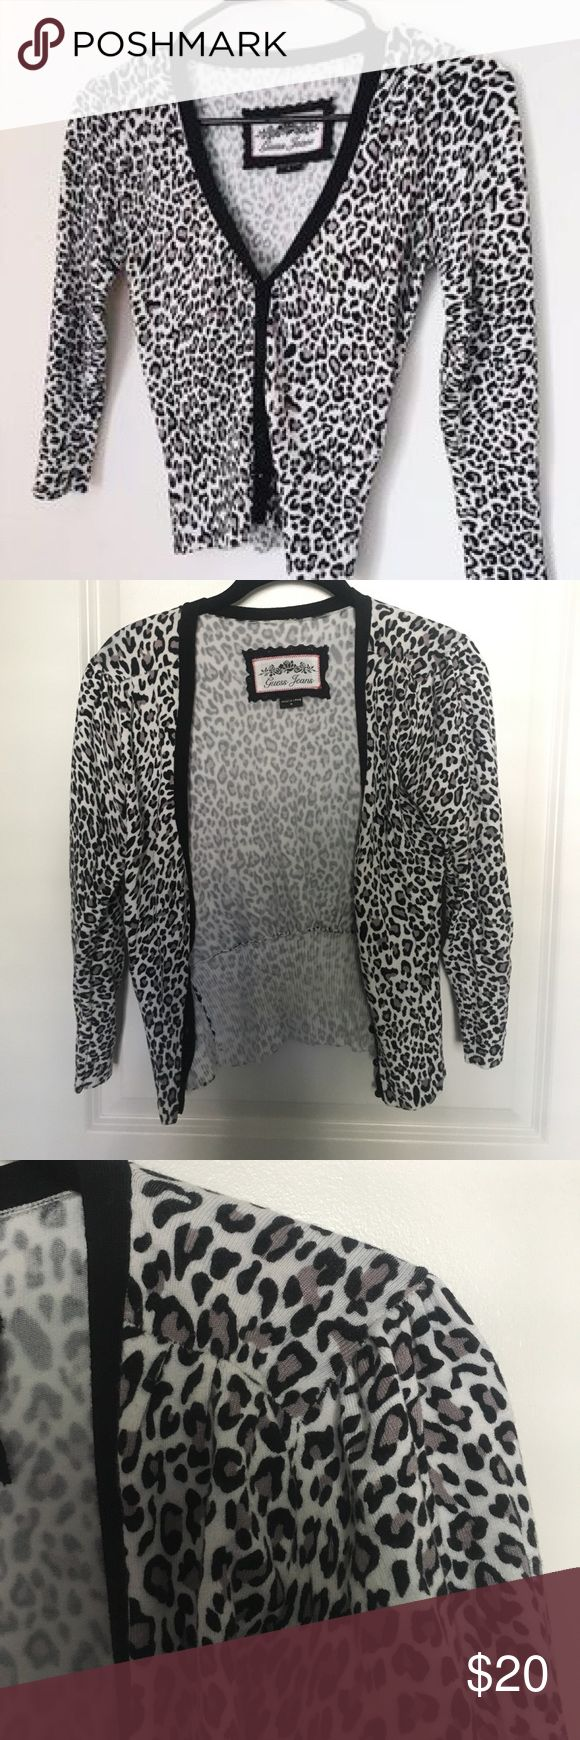 Grey Leopard Guess Jeans Cardigan Sweater Black, white and grey leopard Cardigan. Black vneck color. Black bead buttons. Ruched shoulders and back. ribbed waistline and cuffs. Very soft and comfy but flattering. Can be worn buttoned as a sweater of as an open Cardigan. Guess Sweaters Cardigans